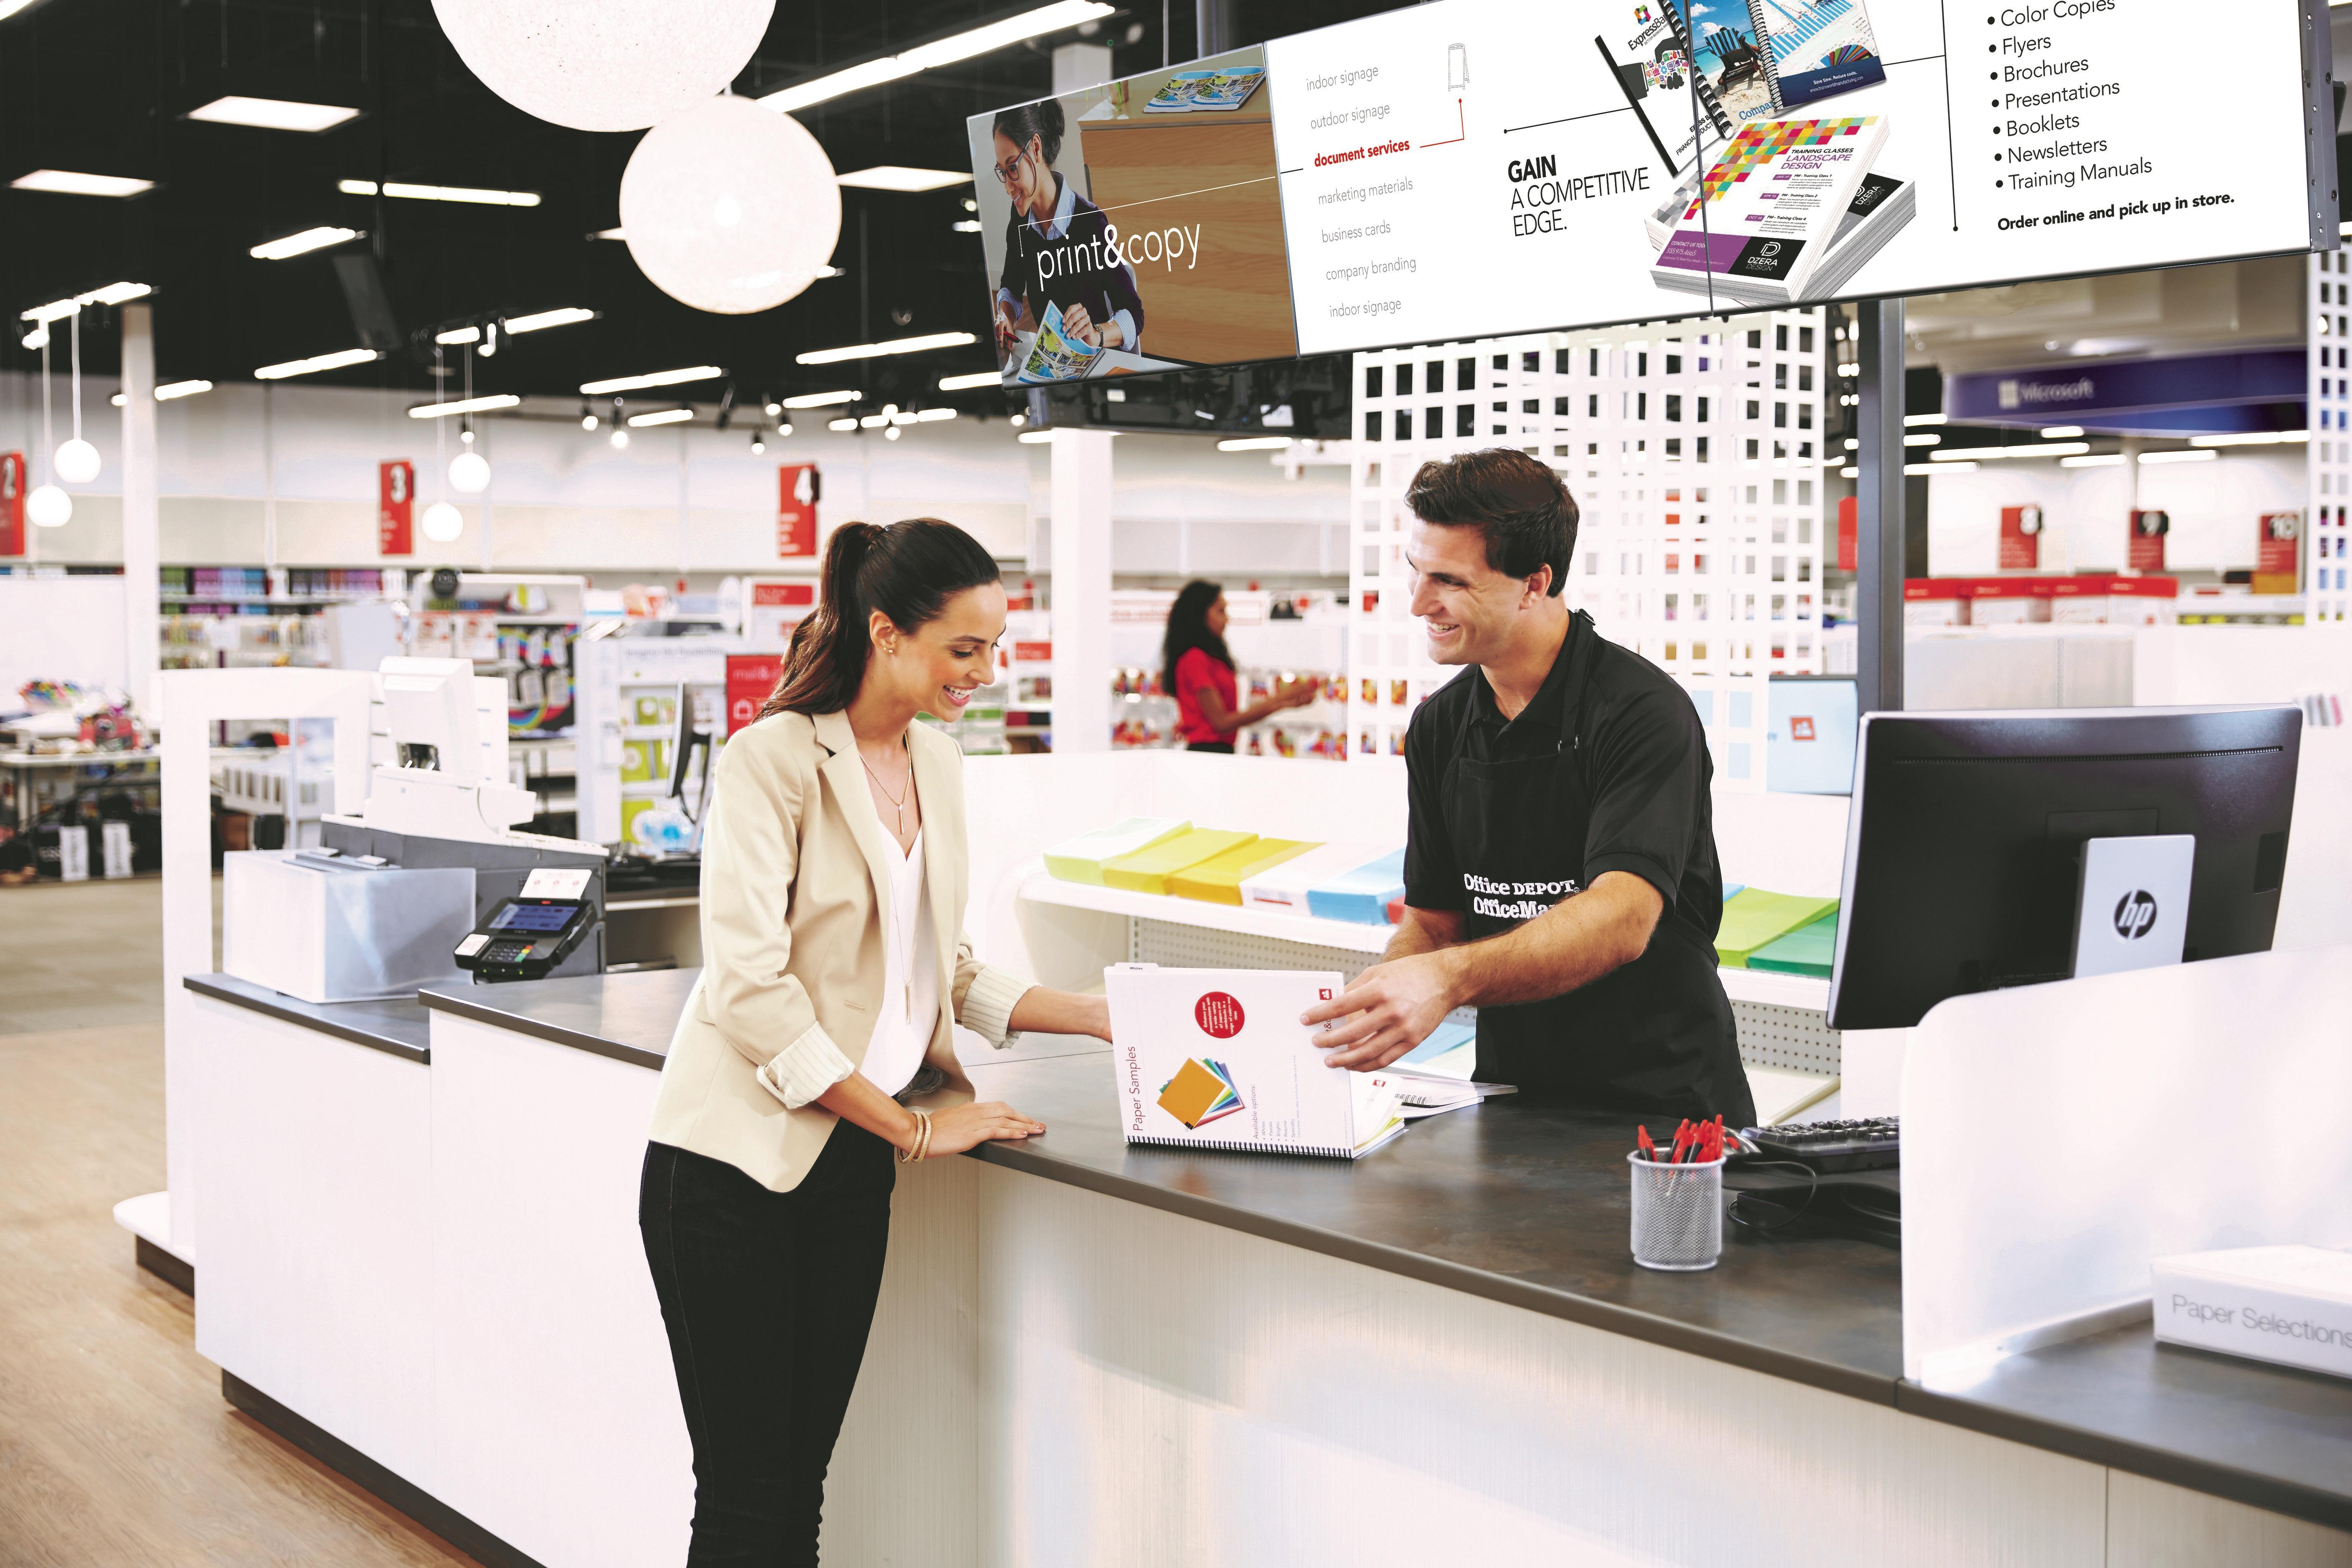 Charmant Bring Your Print Or Copy Jobs To An Office Depot Or OfficeMax Store Our  Print U0026 Copy Associates Are Here To Help. Create. Print. Pack. Ship Done  Right.